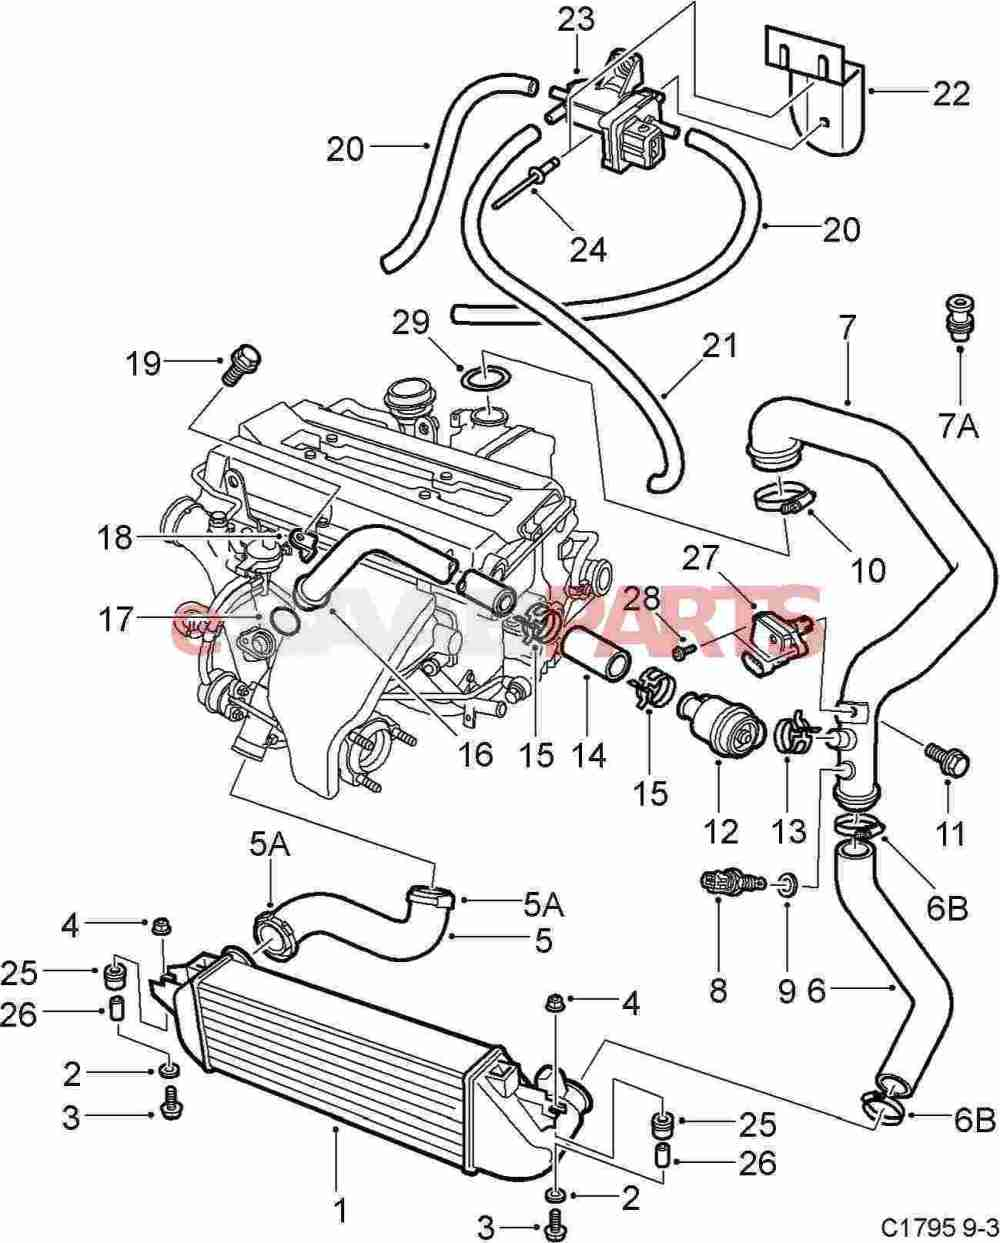 medium resolution of 1999 saab engine diagram wiring diagrams schema rh 37 verena hoegerl de saab 9 5 engine schematic saab 2 0 engine